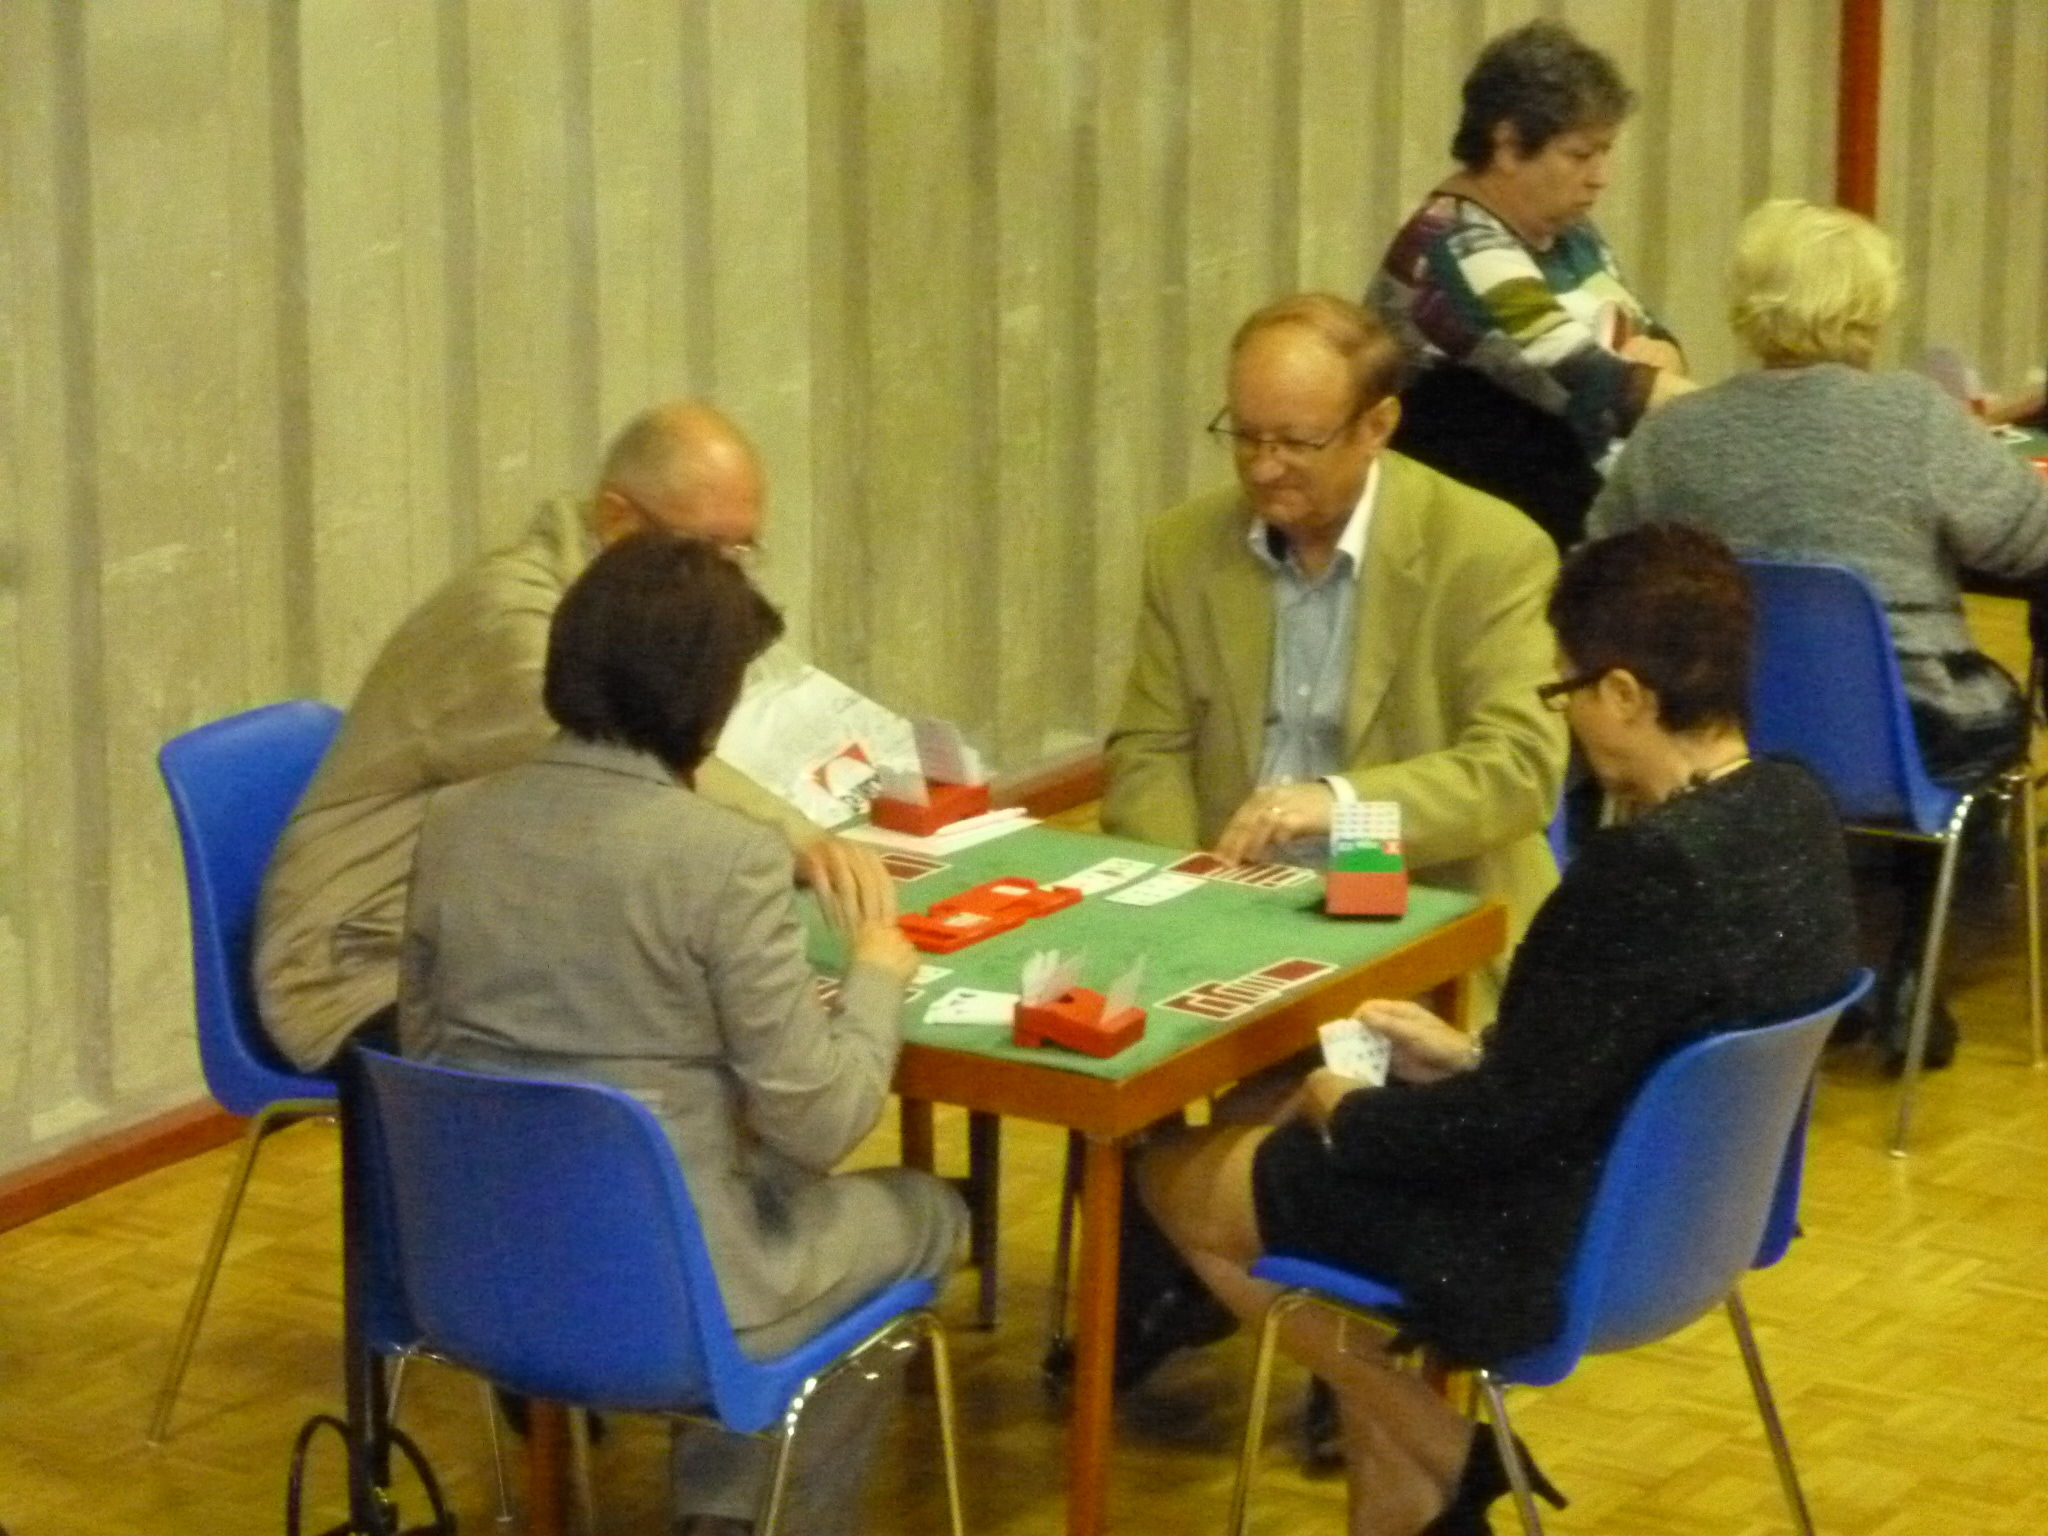 Tournoi annuel du Bridge Club Talant - 14 octobre 2012 067